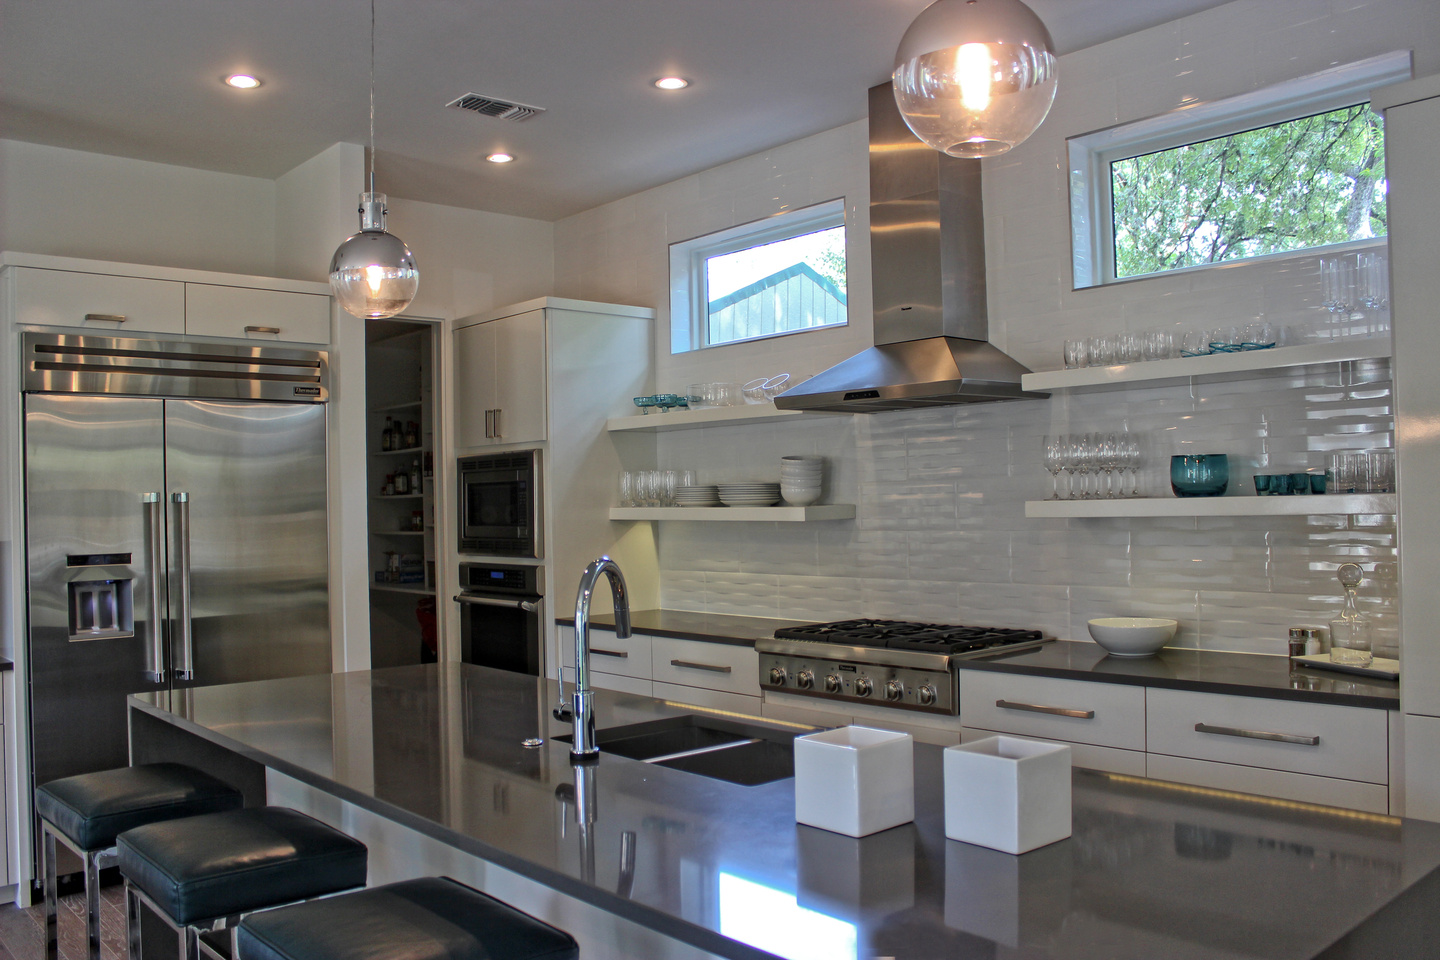 R-Designs-Jane-Reece-Dawson-kitchen.jpg